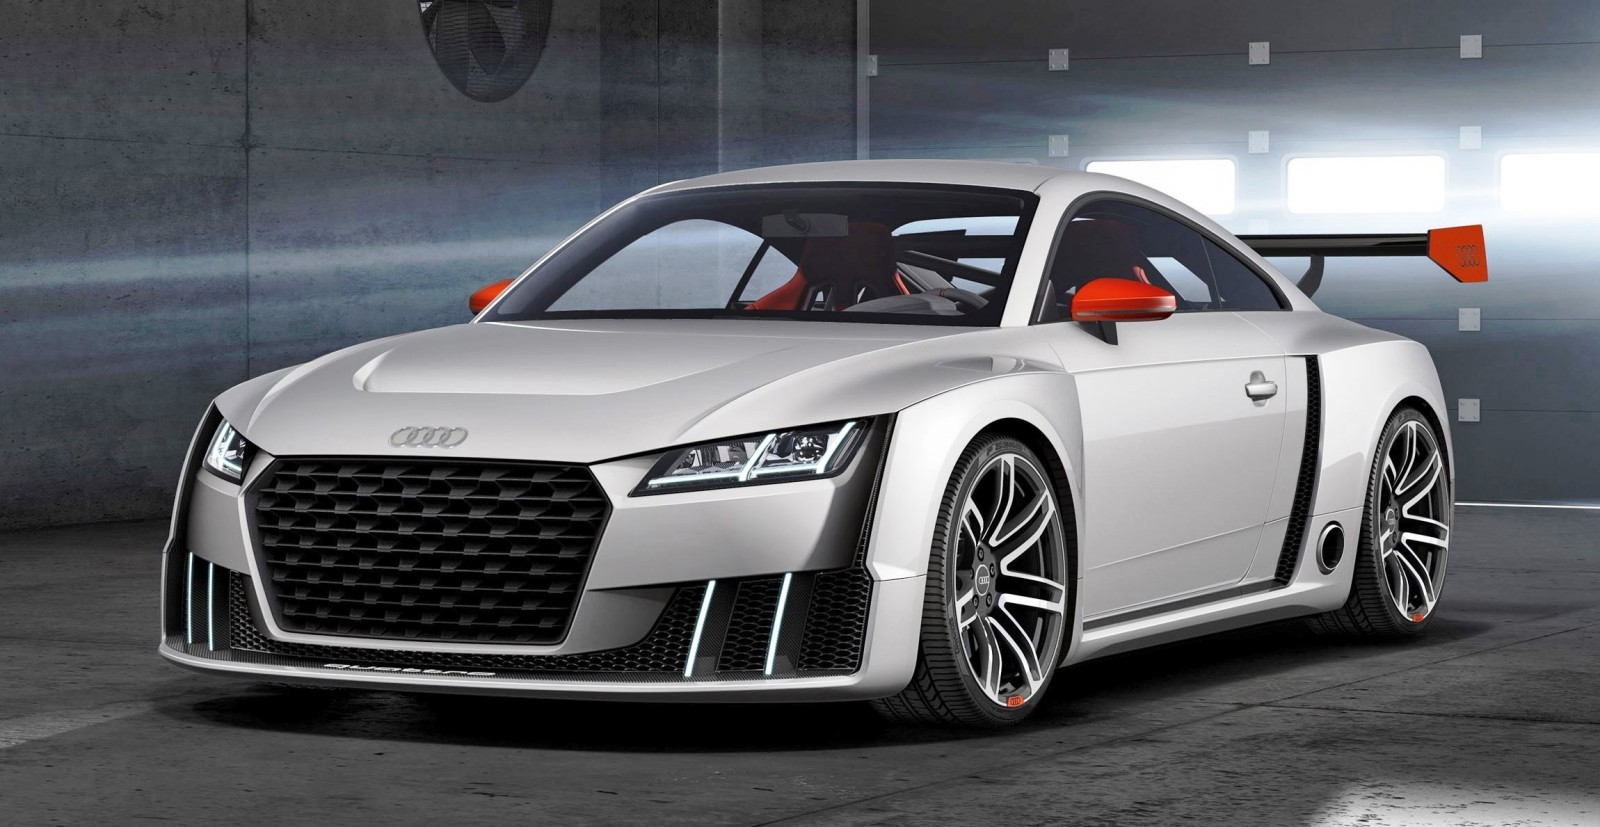 2015 audi tt clubsport turbo concept. Black Bedroom Furniture Sets. Home Design Ideas